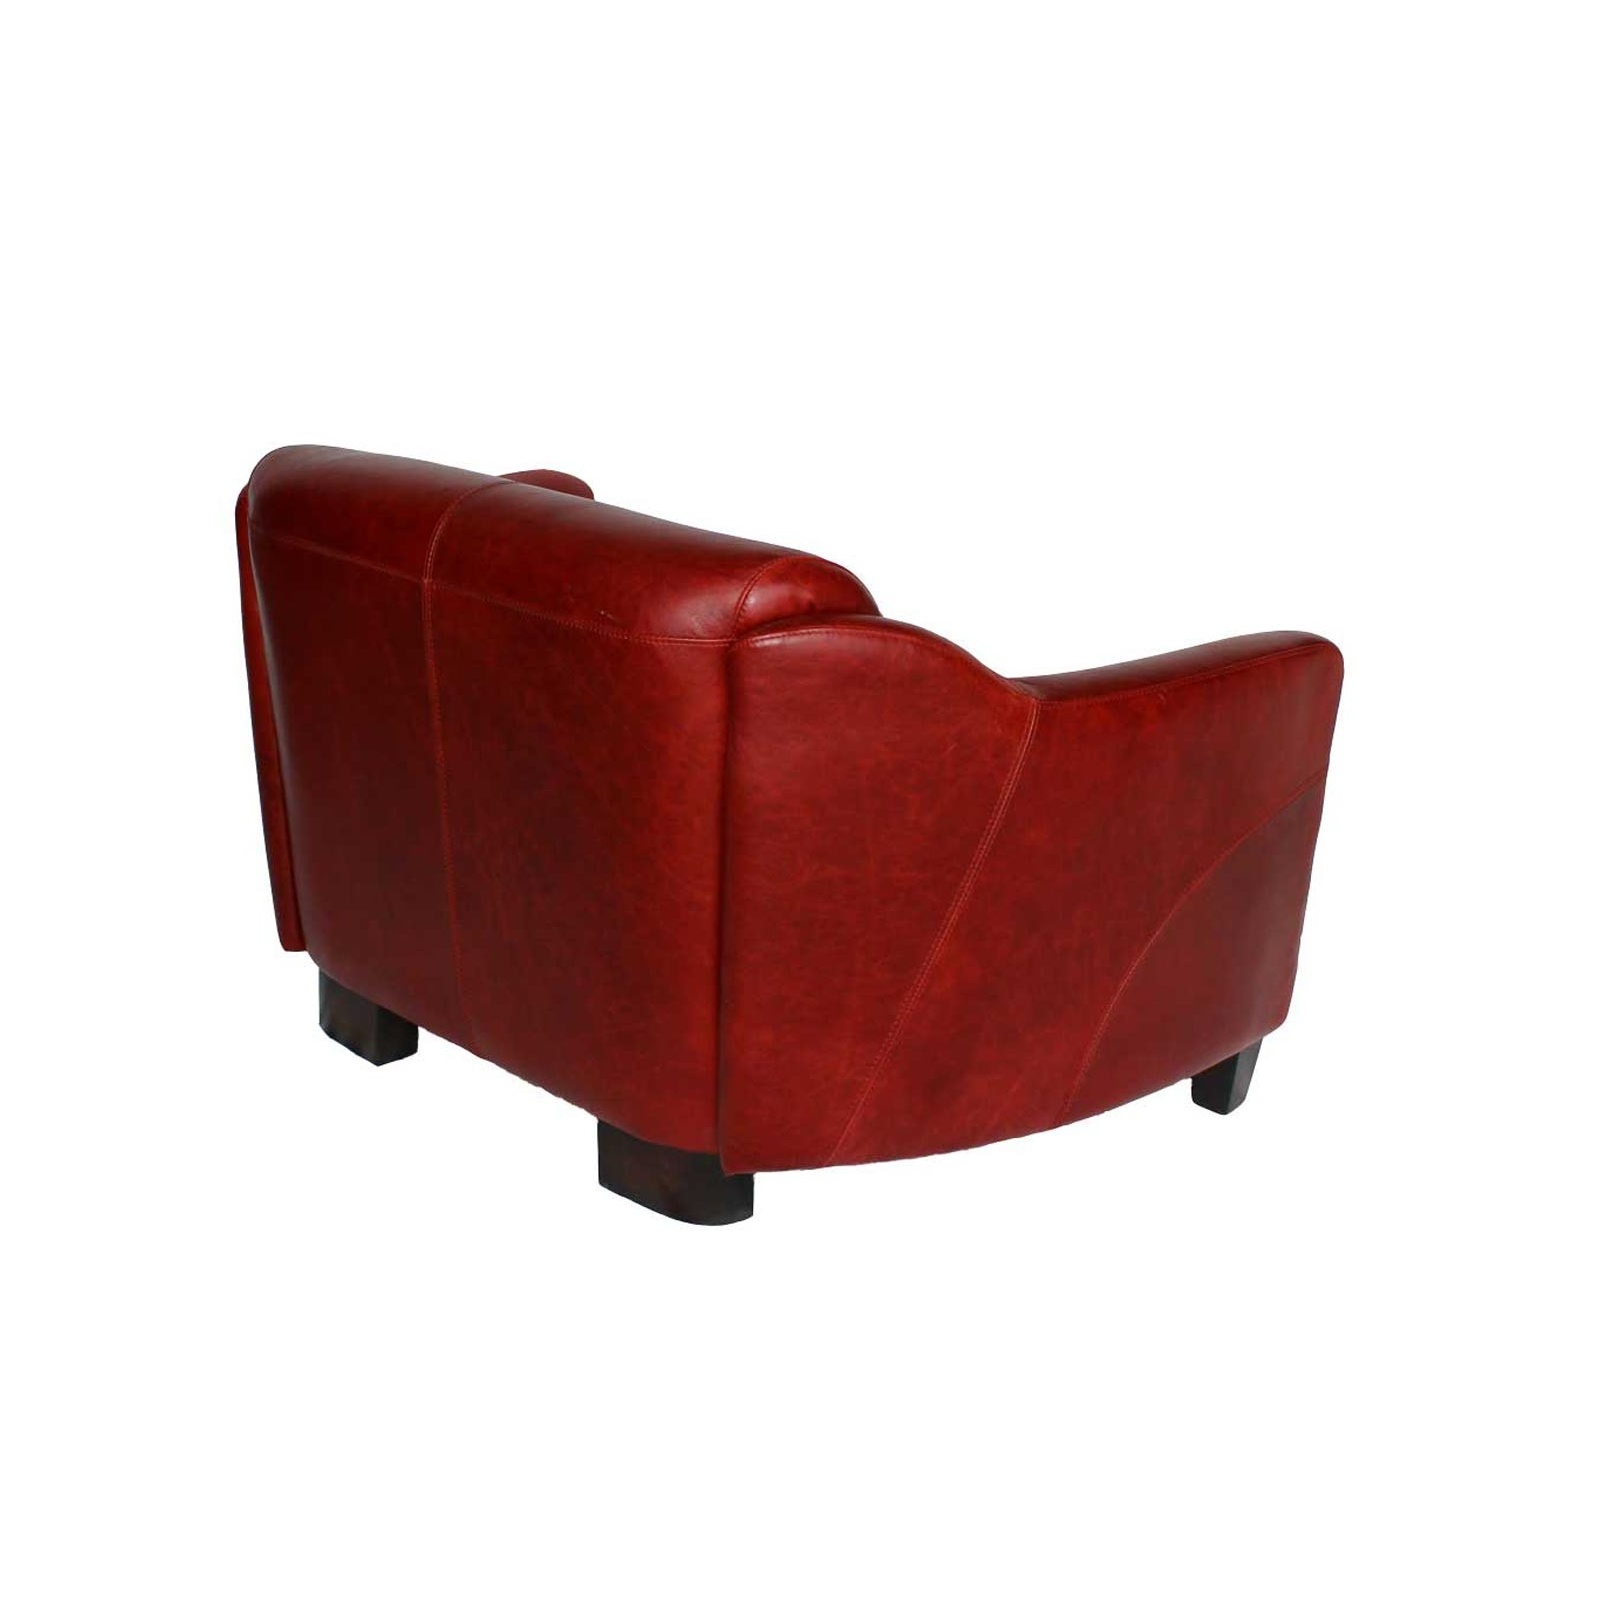 Le canap gentleman rouge jp2b d coration for Canape cuir rouge